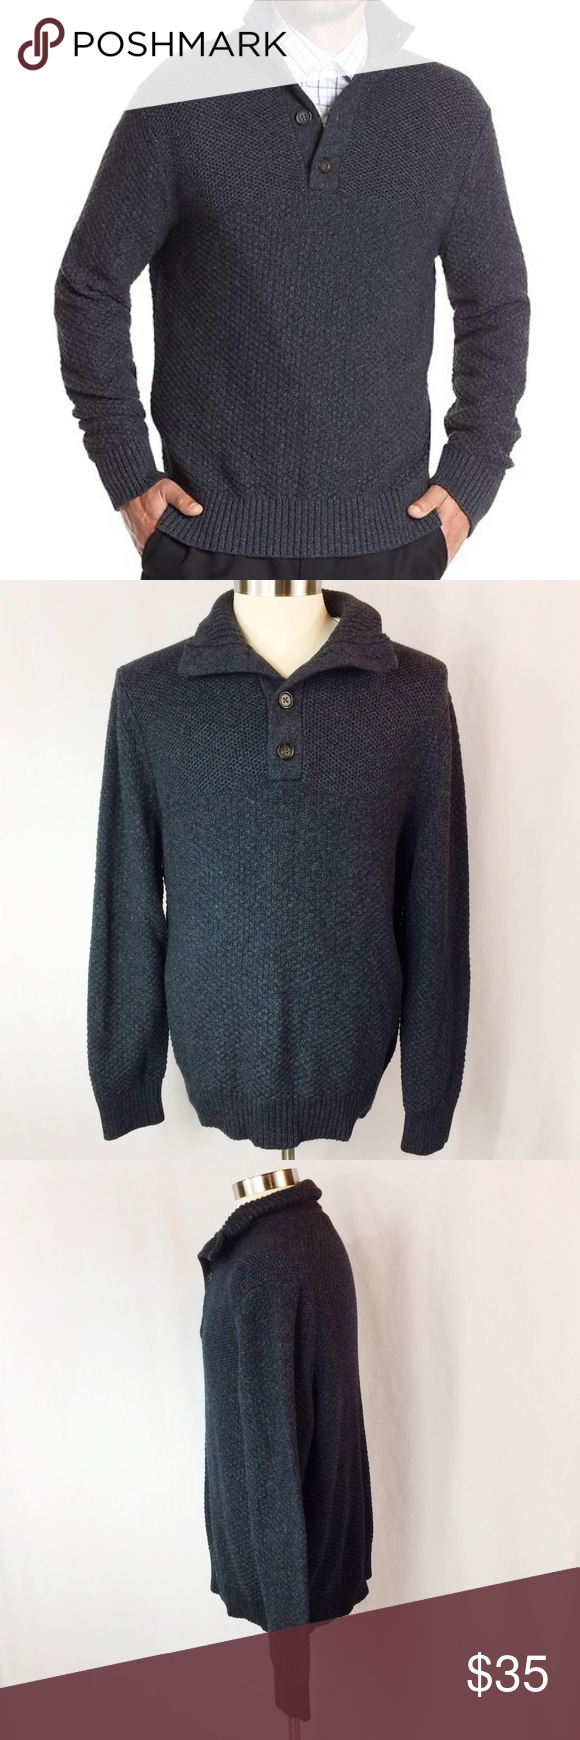 """⭐️Host Pick⭐️ Banana Republic Factory Sweater 1 small spot on the back where fibers are lighter - not damaged, just a natural shade difference.   Chest 48"""" Sleeve 26"""" Length 28""""  60% Cotton 30% Nylon 10% Virgin Wool  Thank you for looking! Banana Republic Sweaters"""